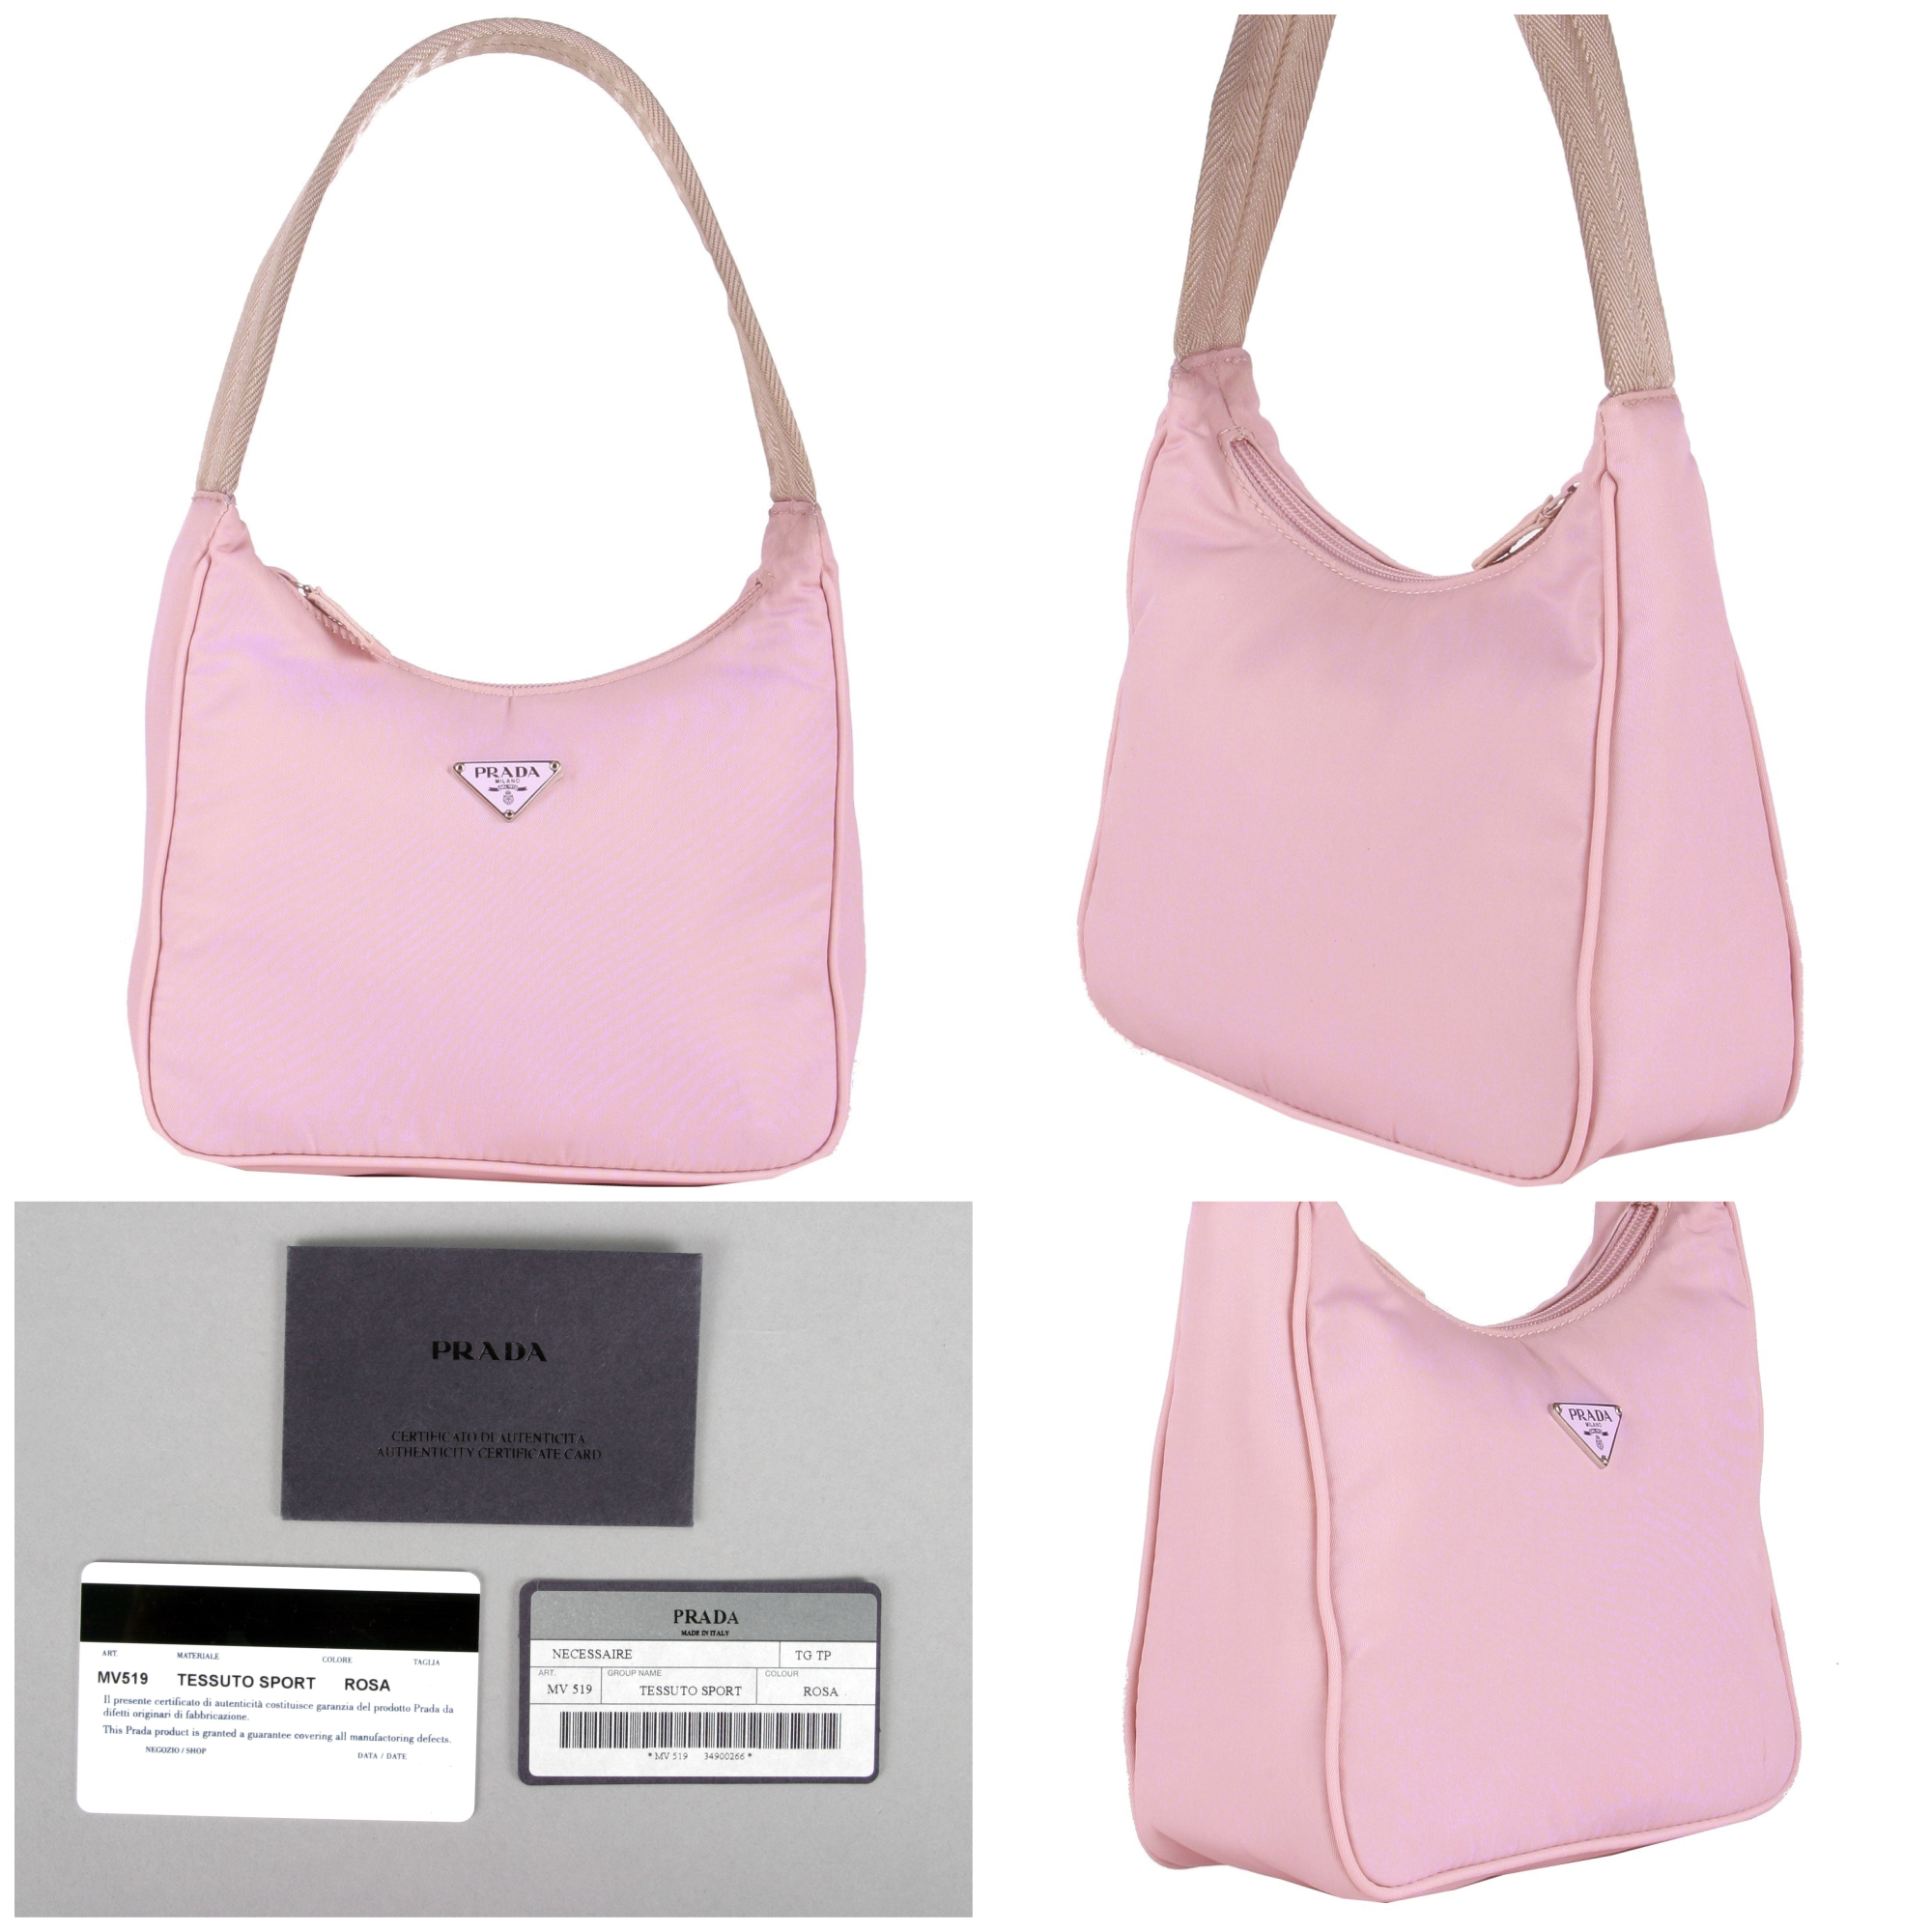 907071eac512c8 reduced prada saffiano lux galleria bag 3bb04 eb4ab; new arrivals details  about 250 prada bag in pink stunning color w authenticity cards f6f31 ff131